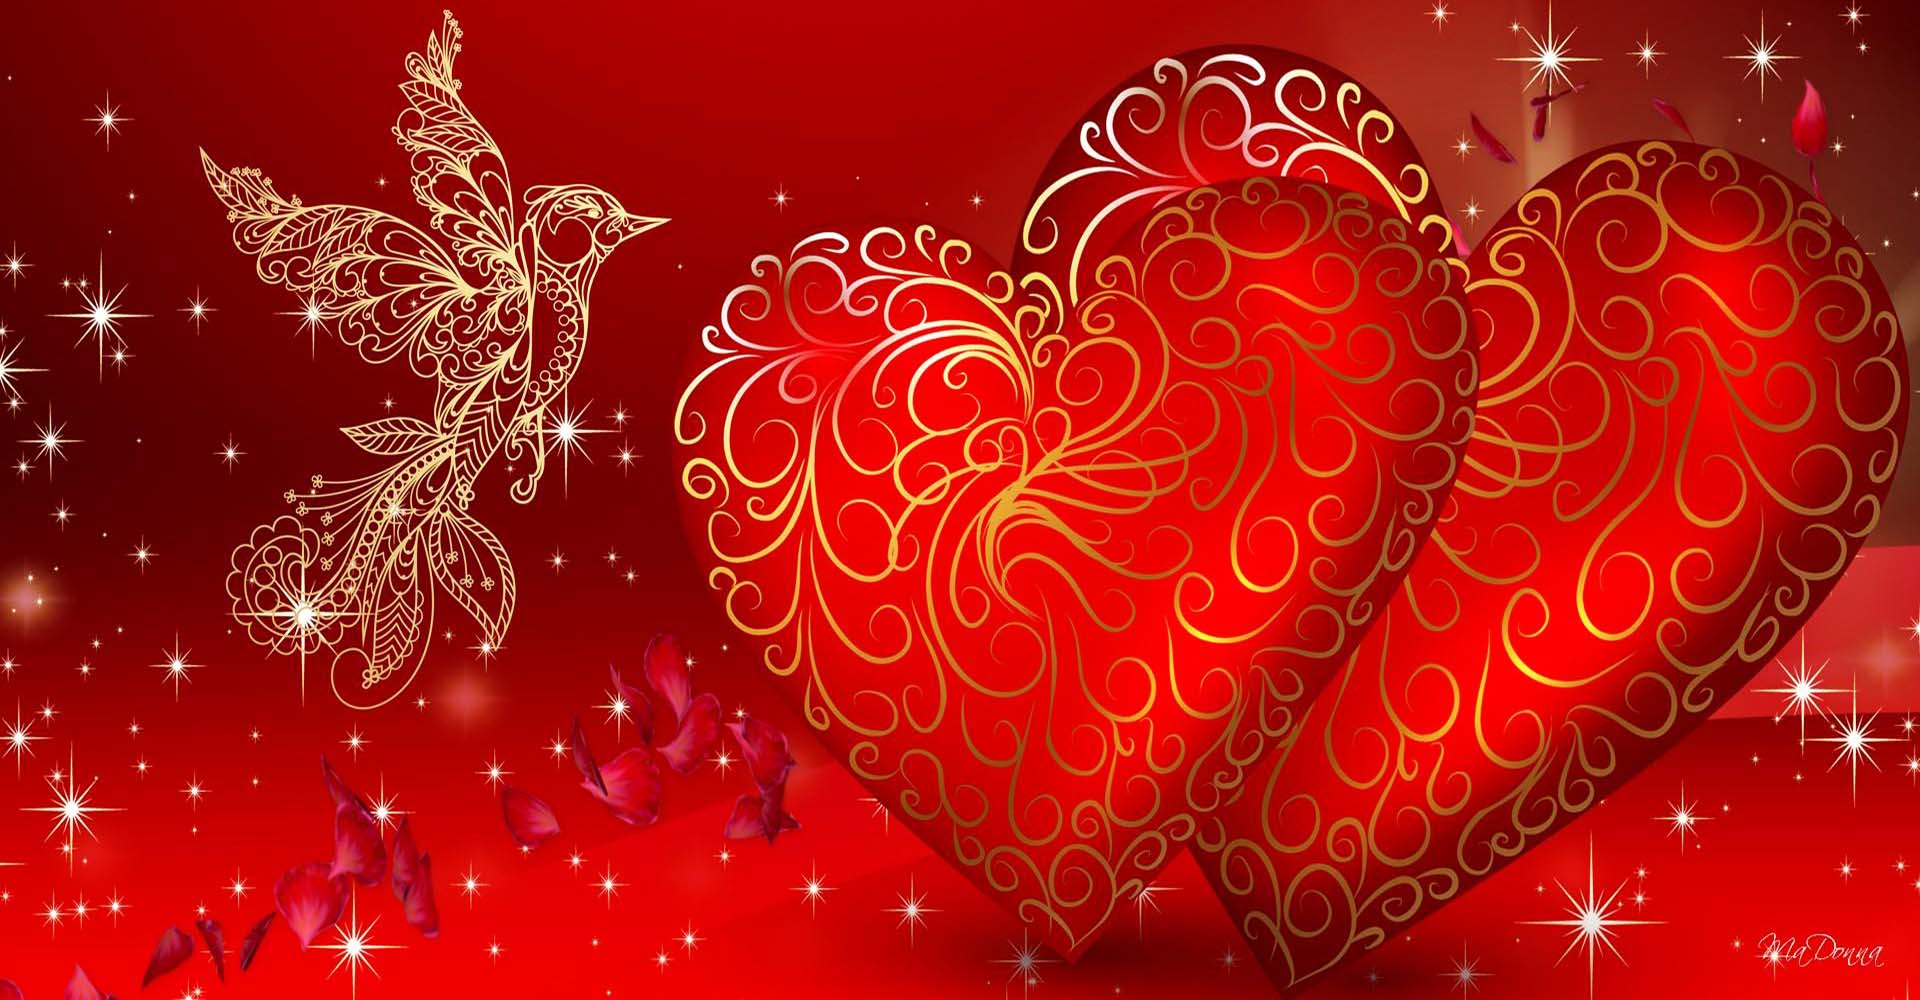 Love Heart Wallpaper Background : Love Heart Wallpapers 2016 - Wallpaper cave